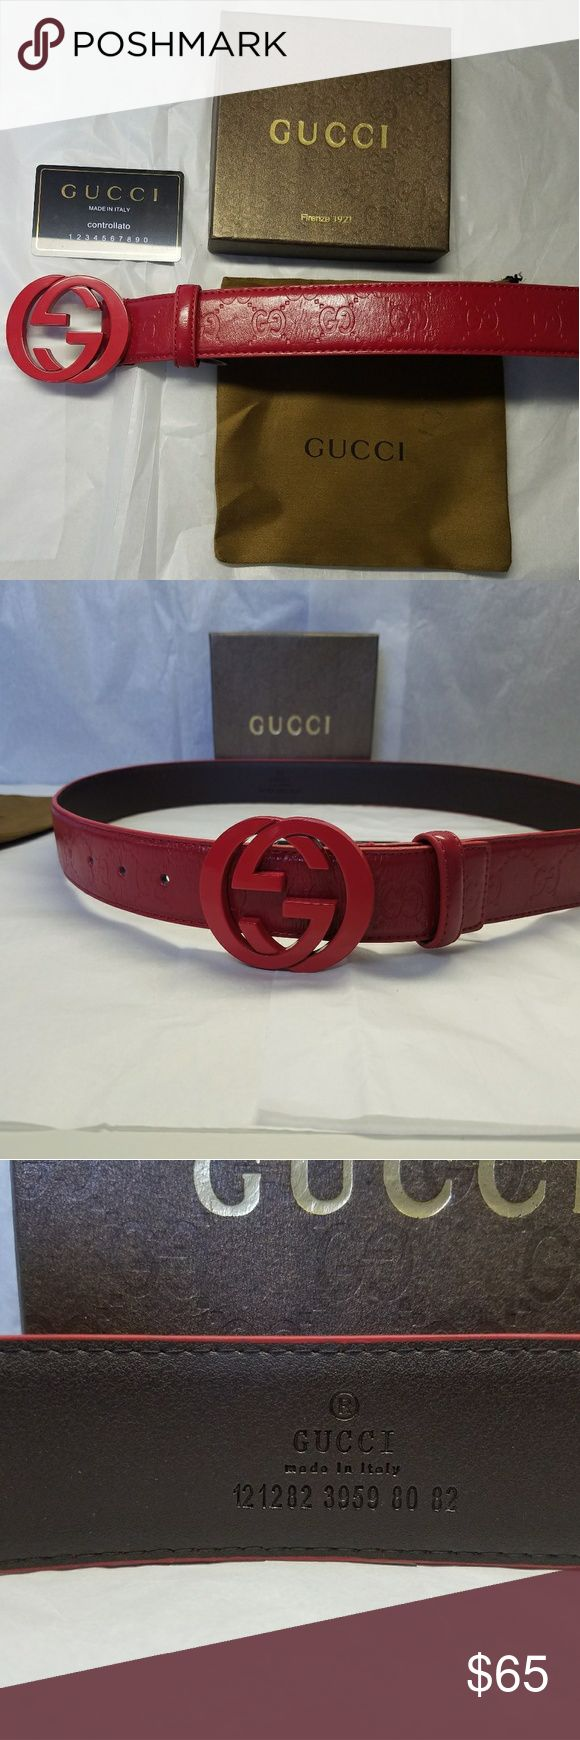 Men Gucci Belt New Gucci Accessories Belts